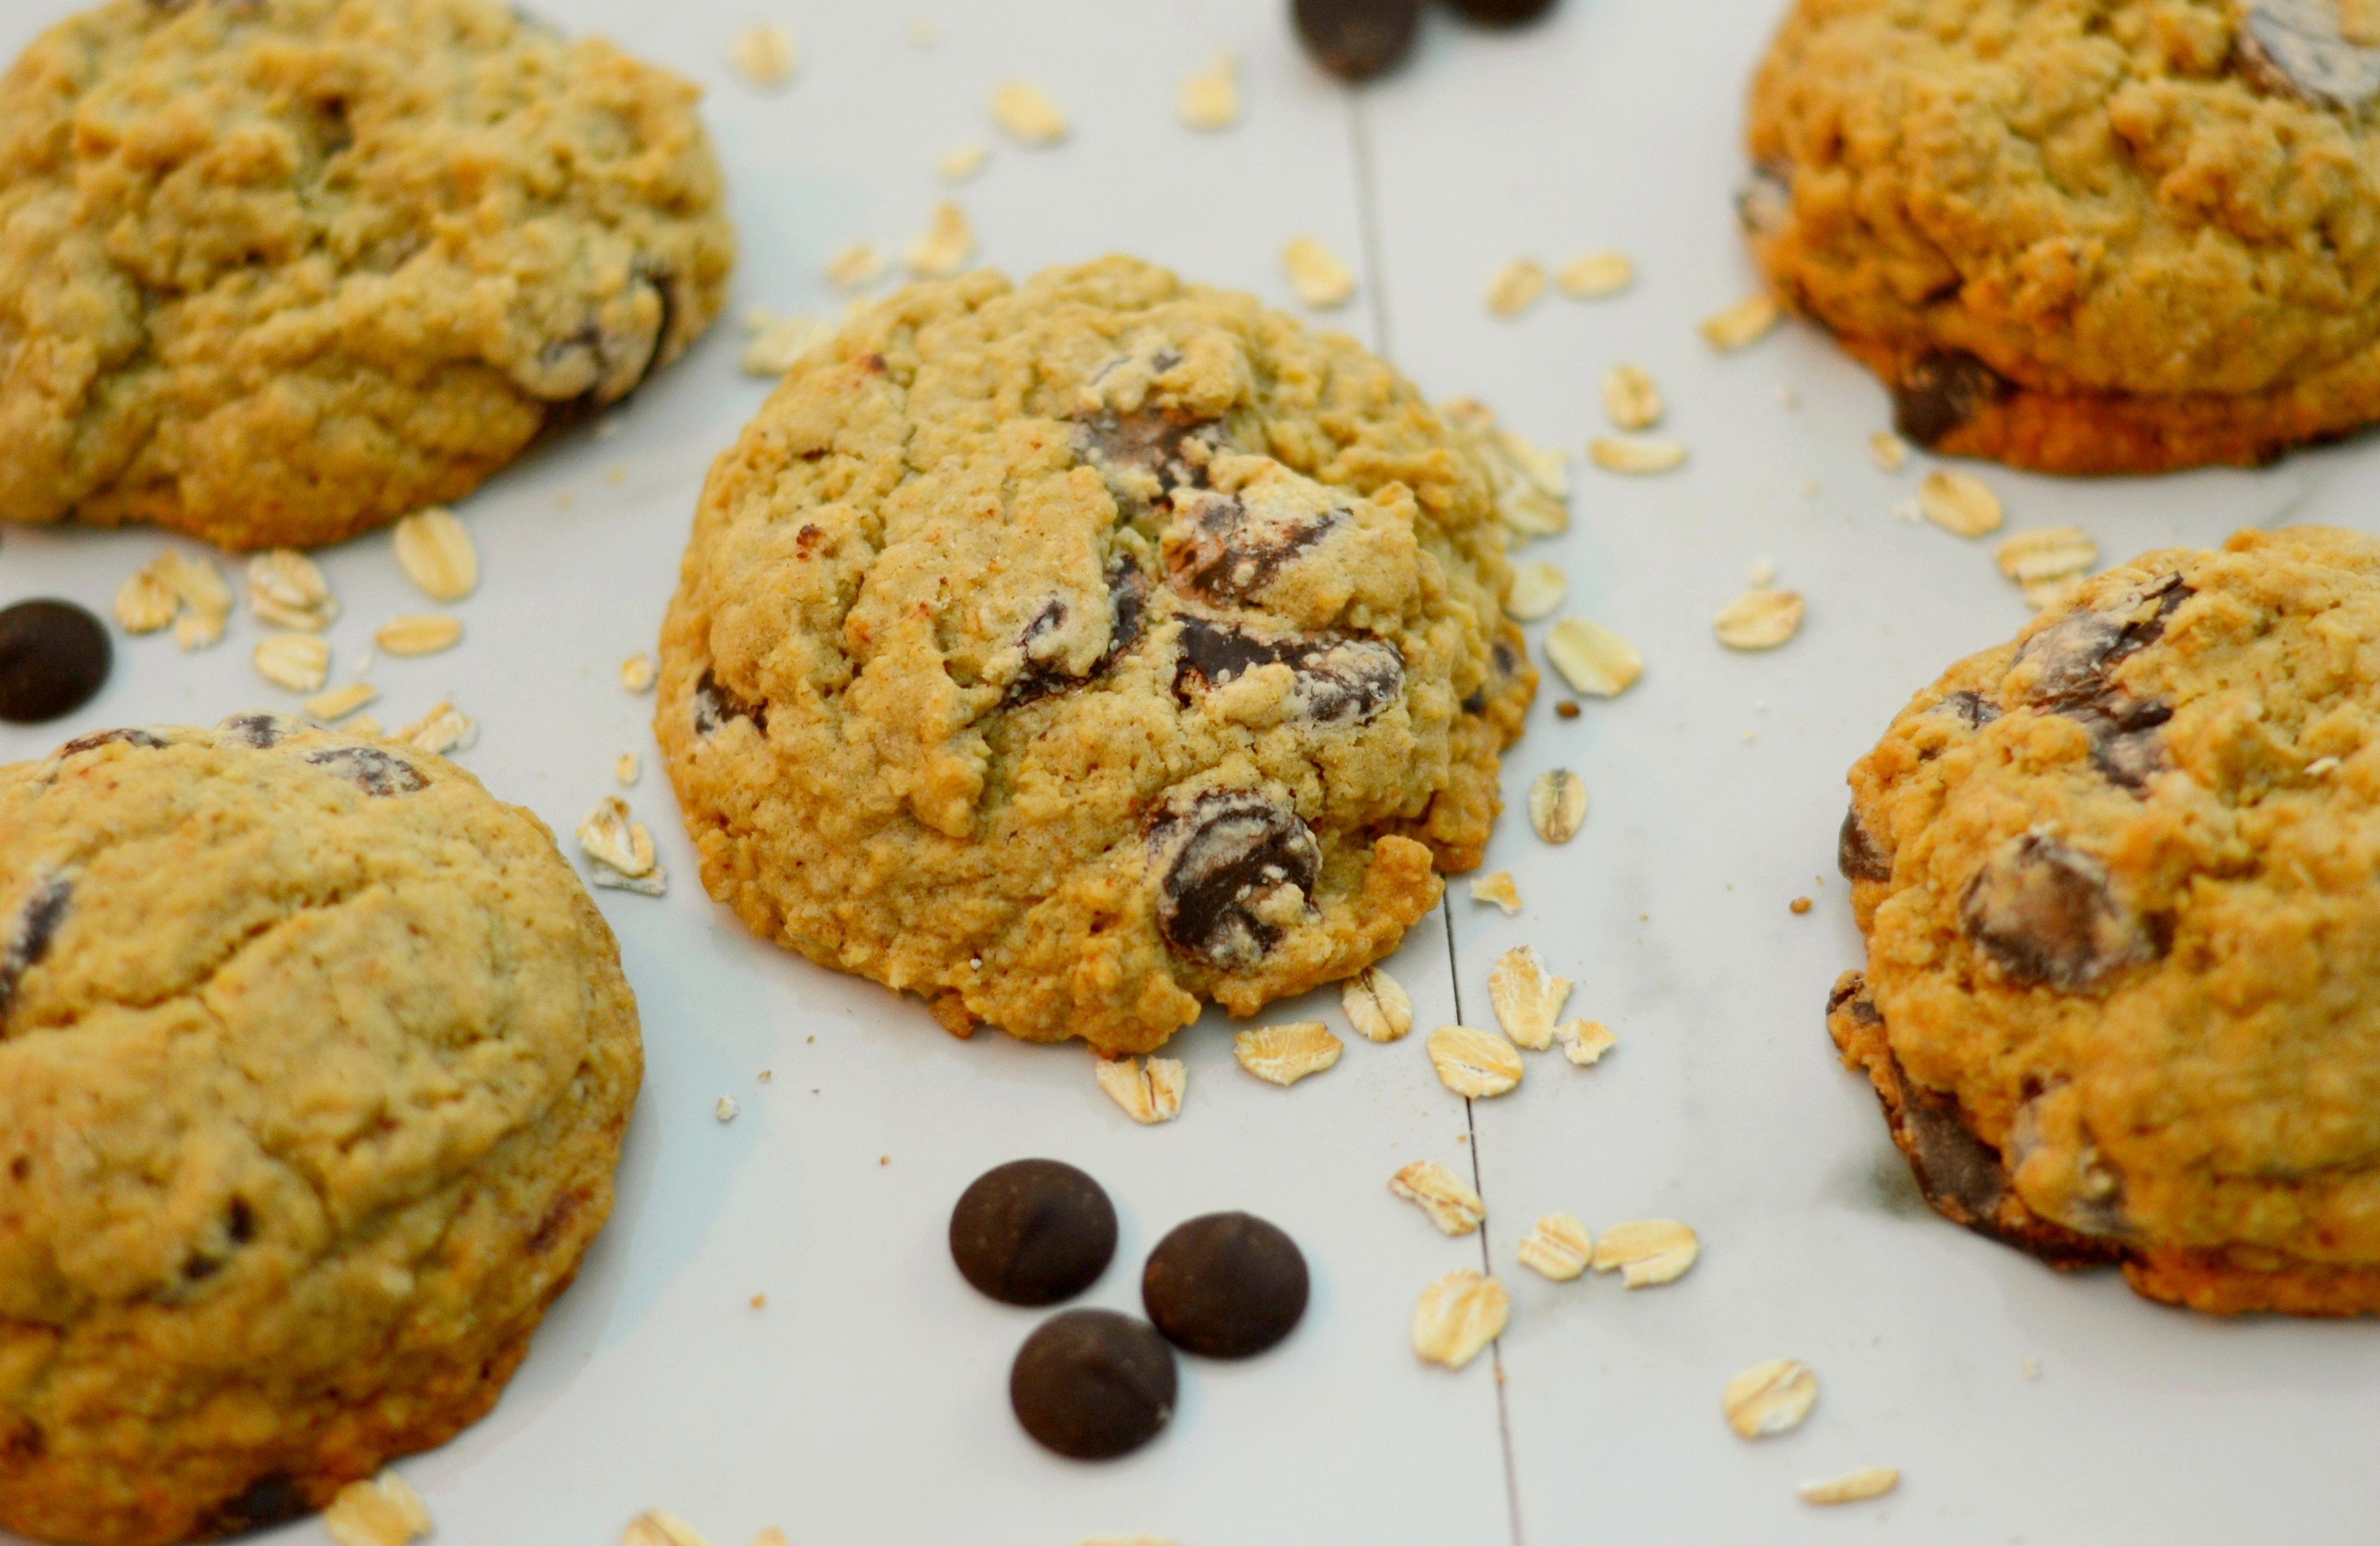 Overhead View of Giant Chocolate Chip Oatmeal Cookies on a White Background